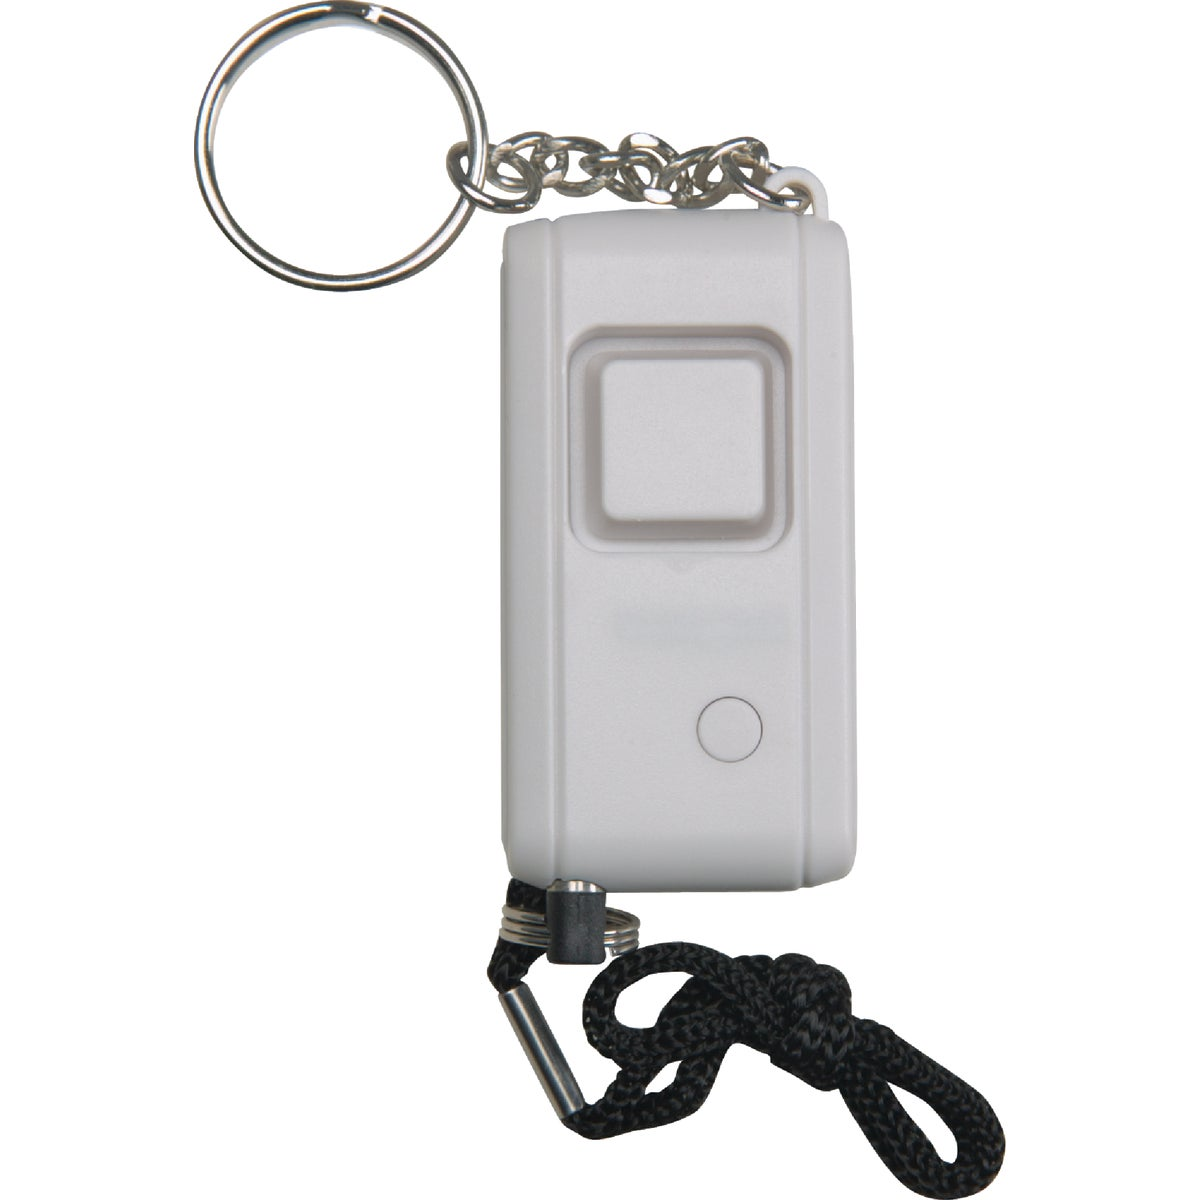 PERSONAL SECURITY ALARM - 51208 by Jasco Products Co